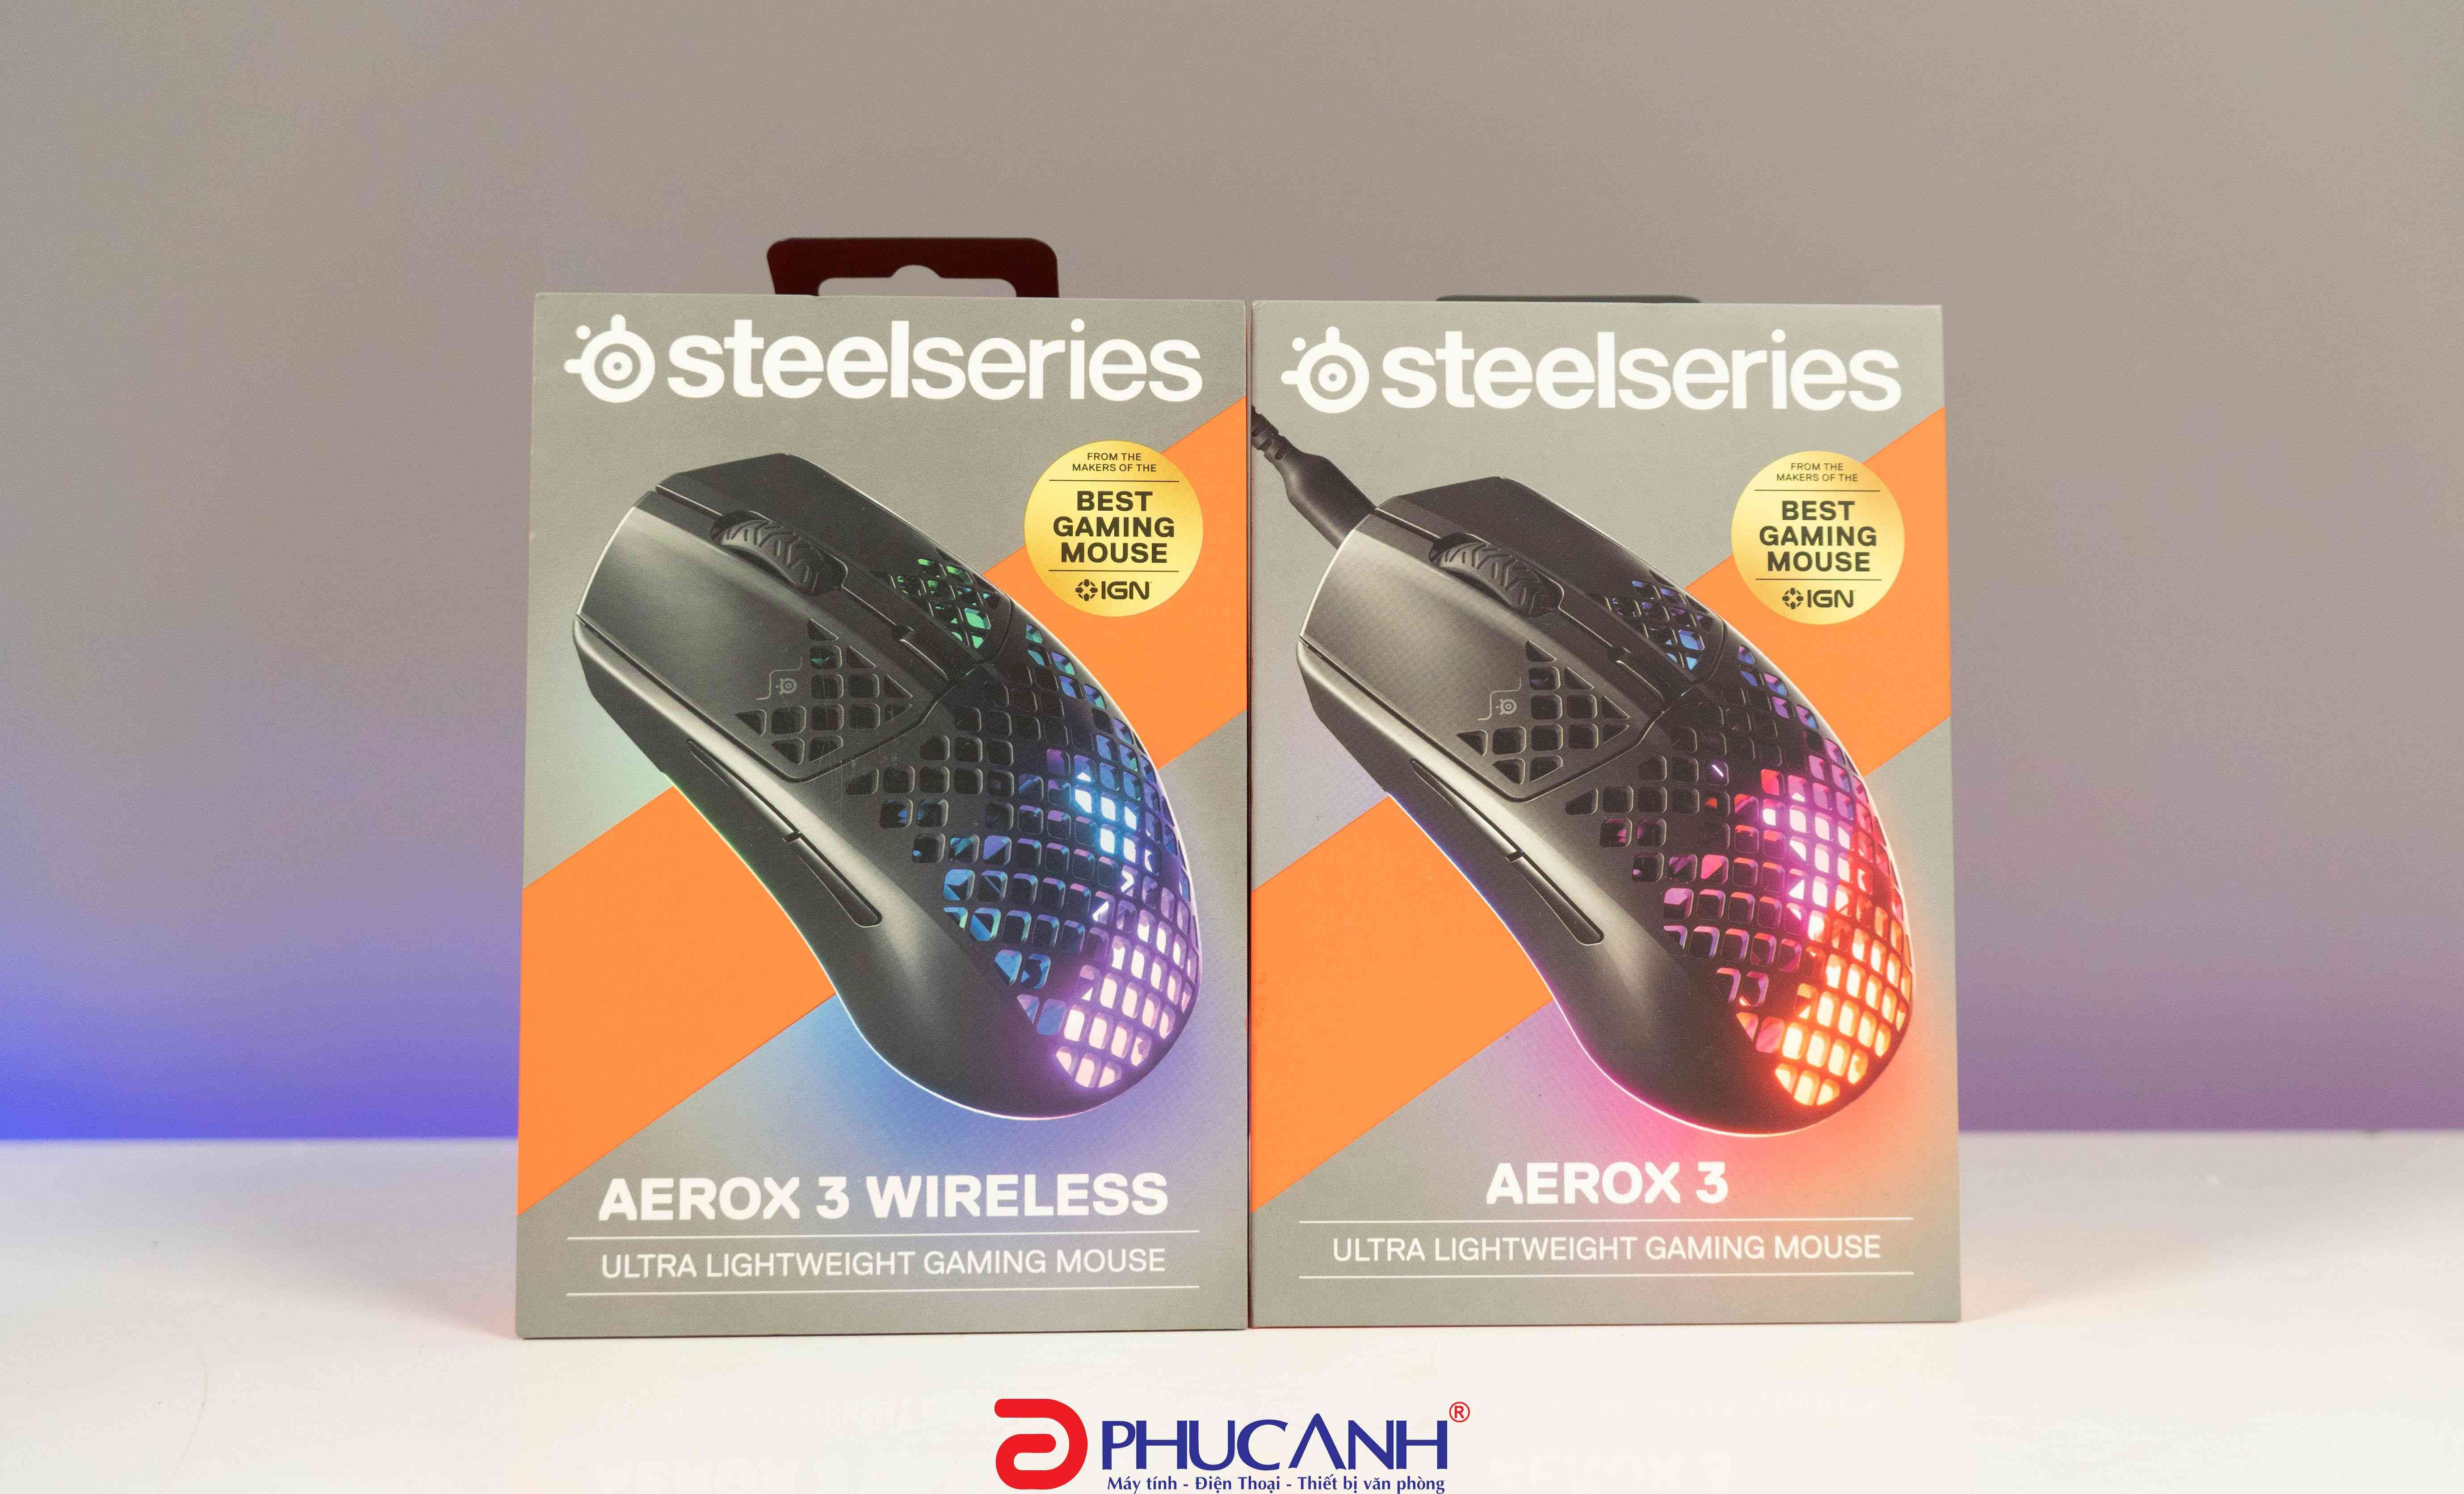 [Review] SteelSeries Aerox 3 | Anh em nhà tổ ong